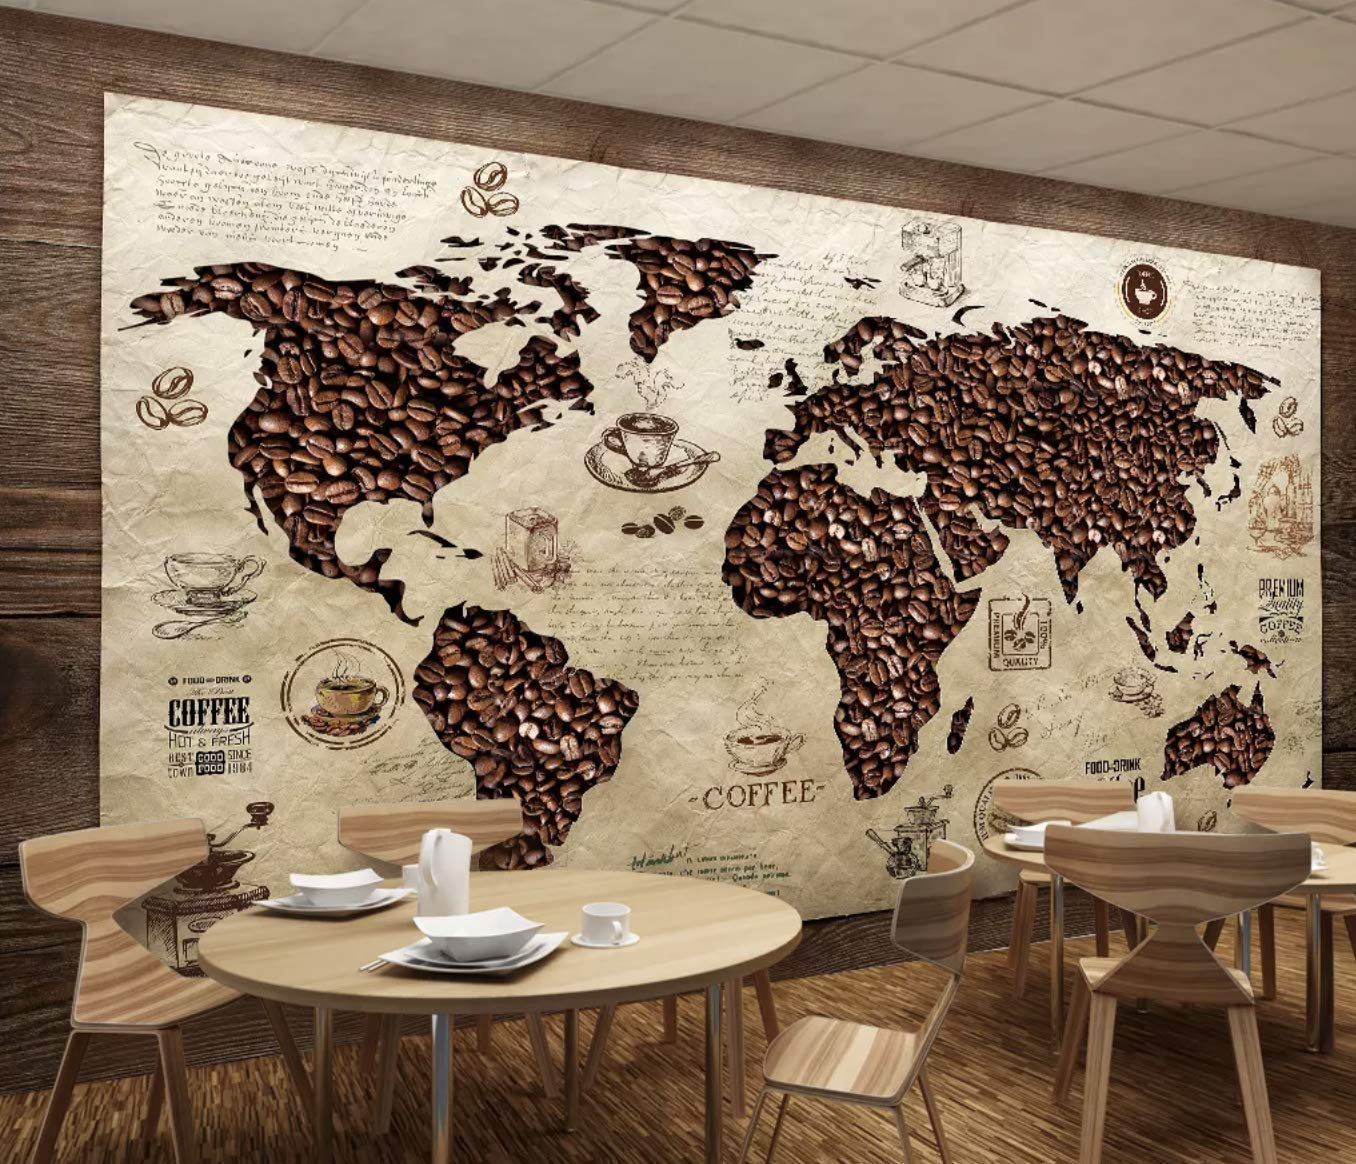 map t-shirt designs, map wall art, map book covers, map craft projects, map tattoo designs, map border designs, map wallpaper, map tiles, map art ideas, map canvas painting, map of america, map wall decal, map still life, map posters, on map murals